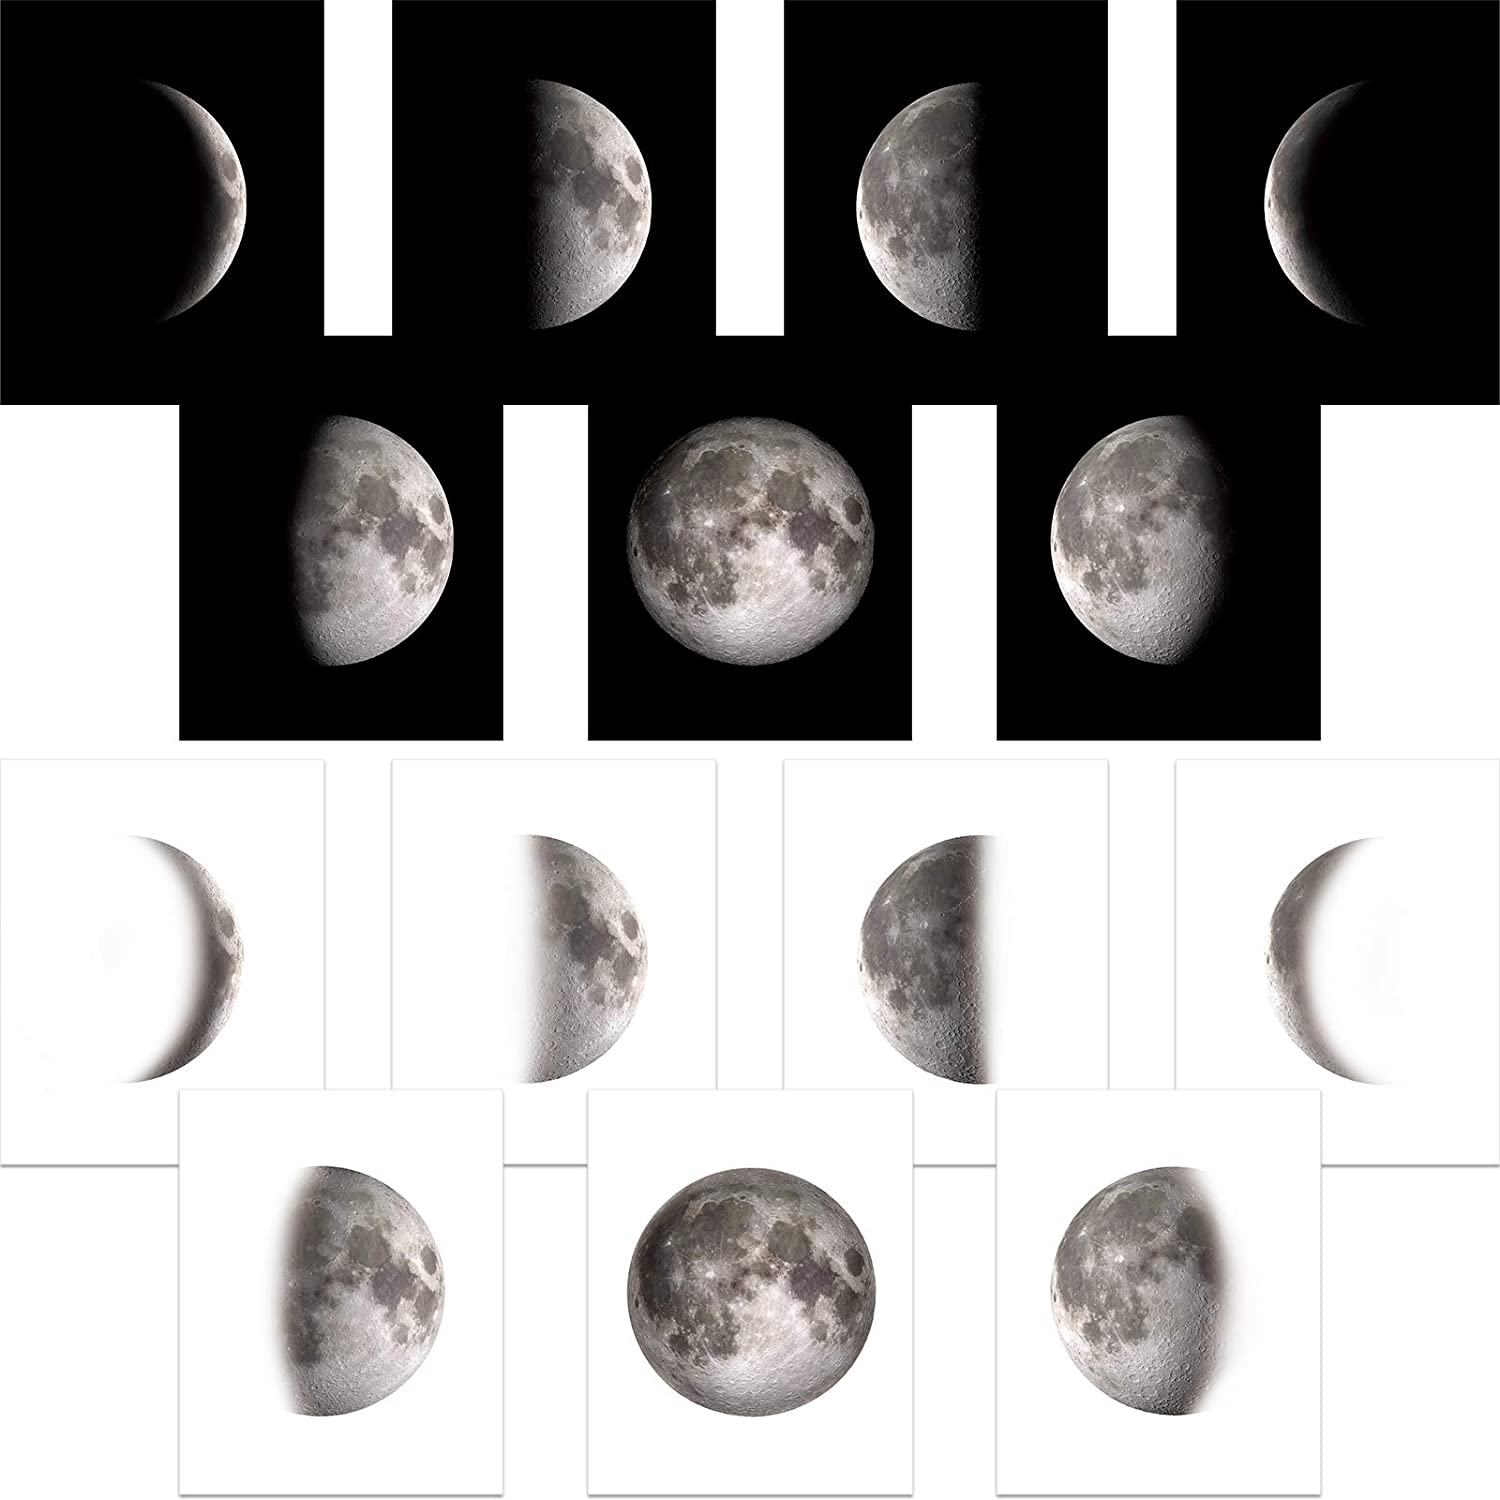 Outus 14 Pieces Moon Phases Wall Art Print Moon Poster Bedroom Wall Decor for Living Room Black and White Pictures Unframed Prints 8 x 10 Inch